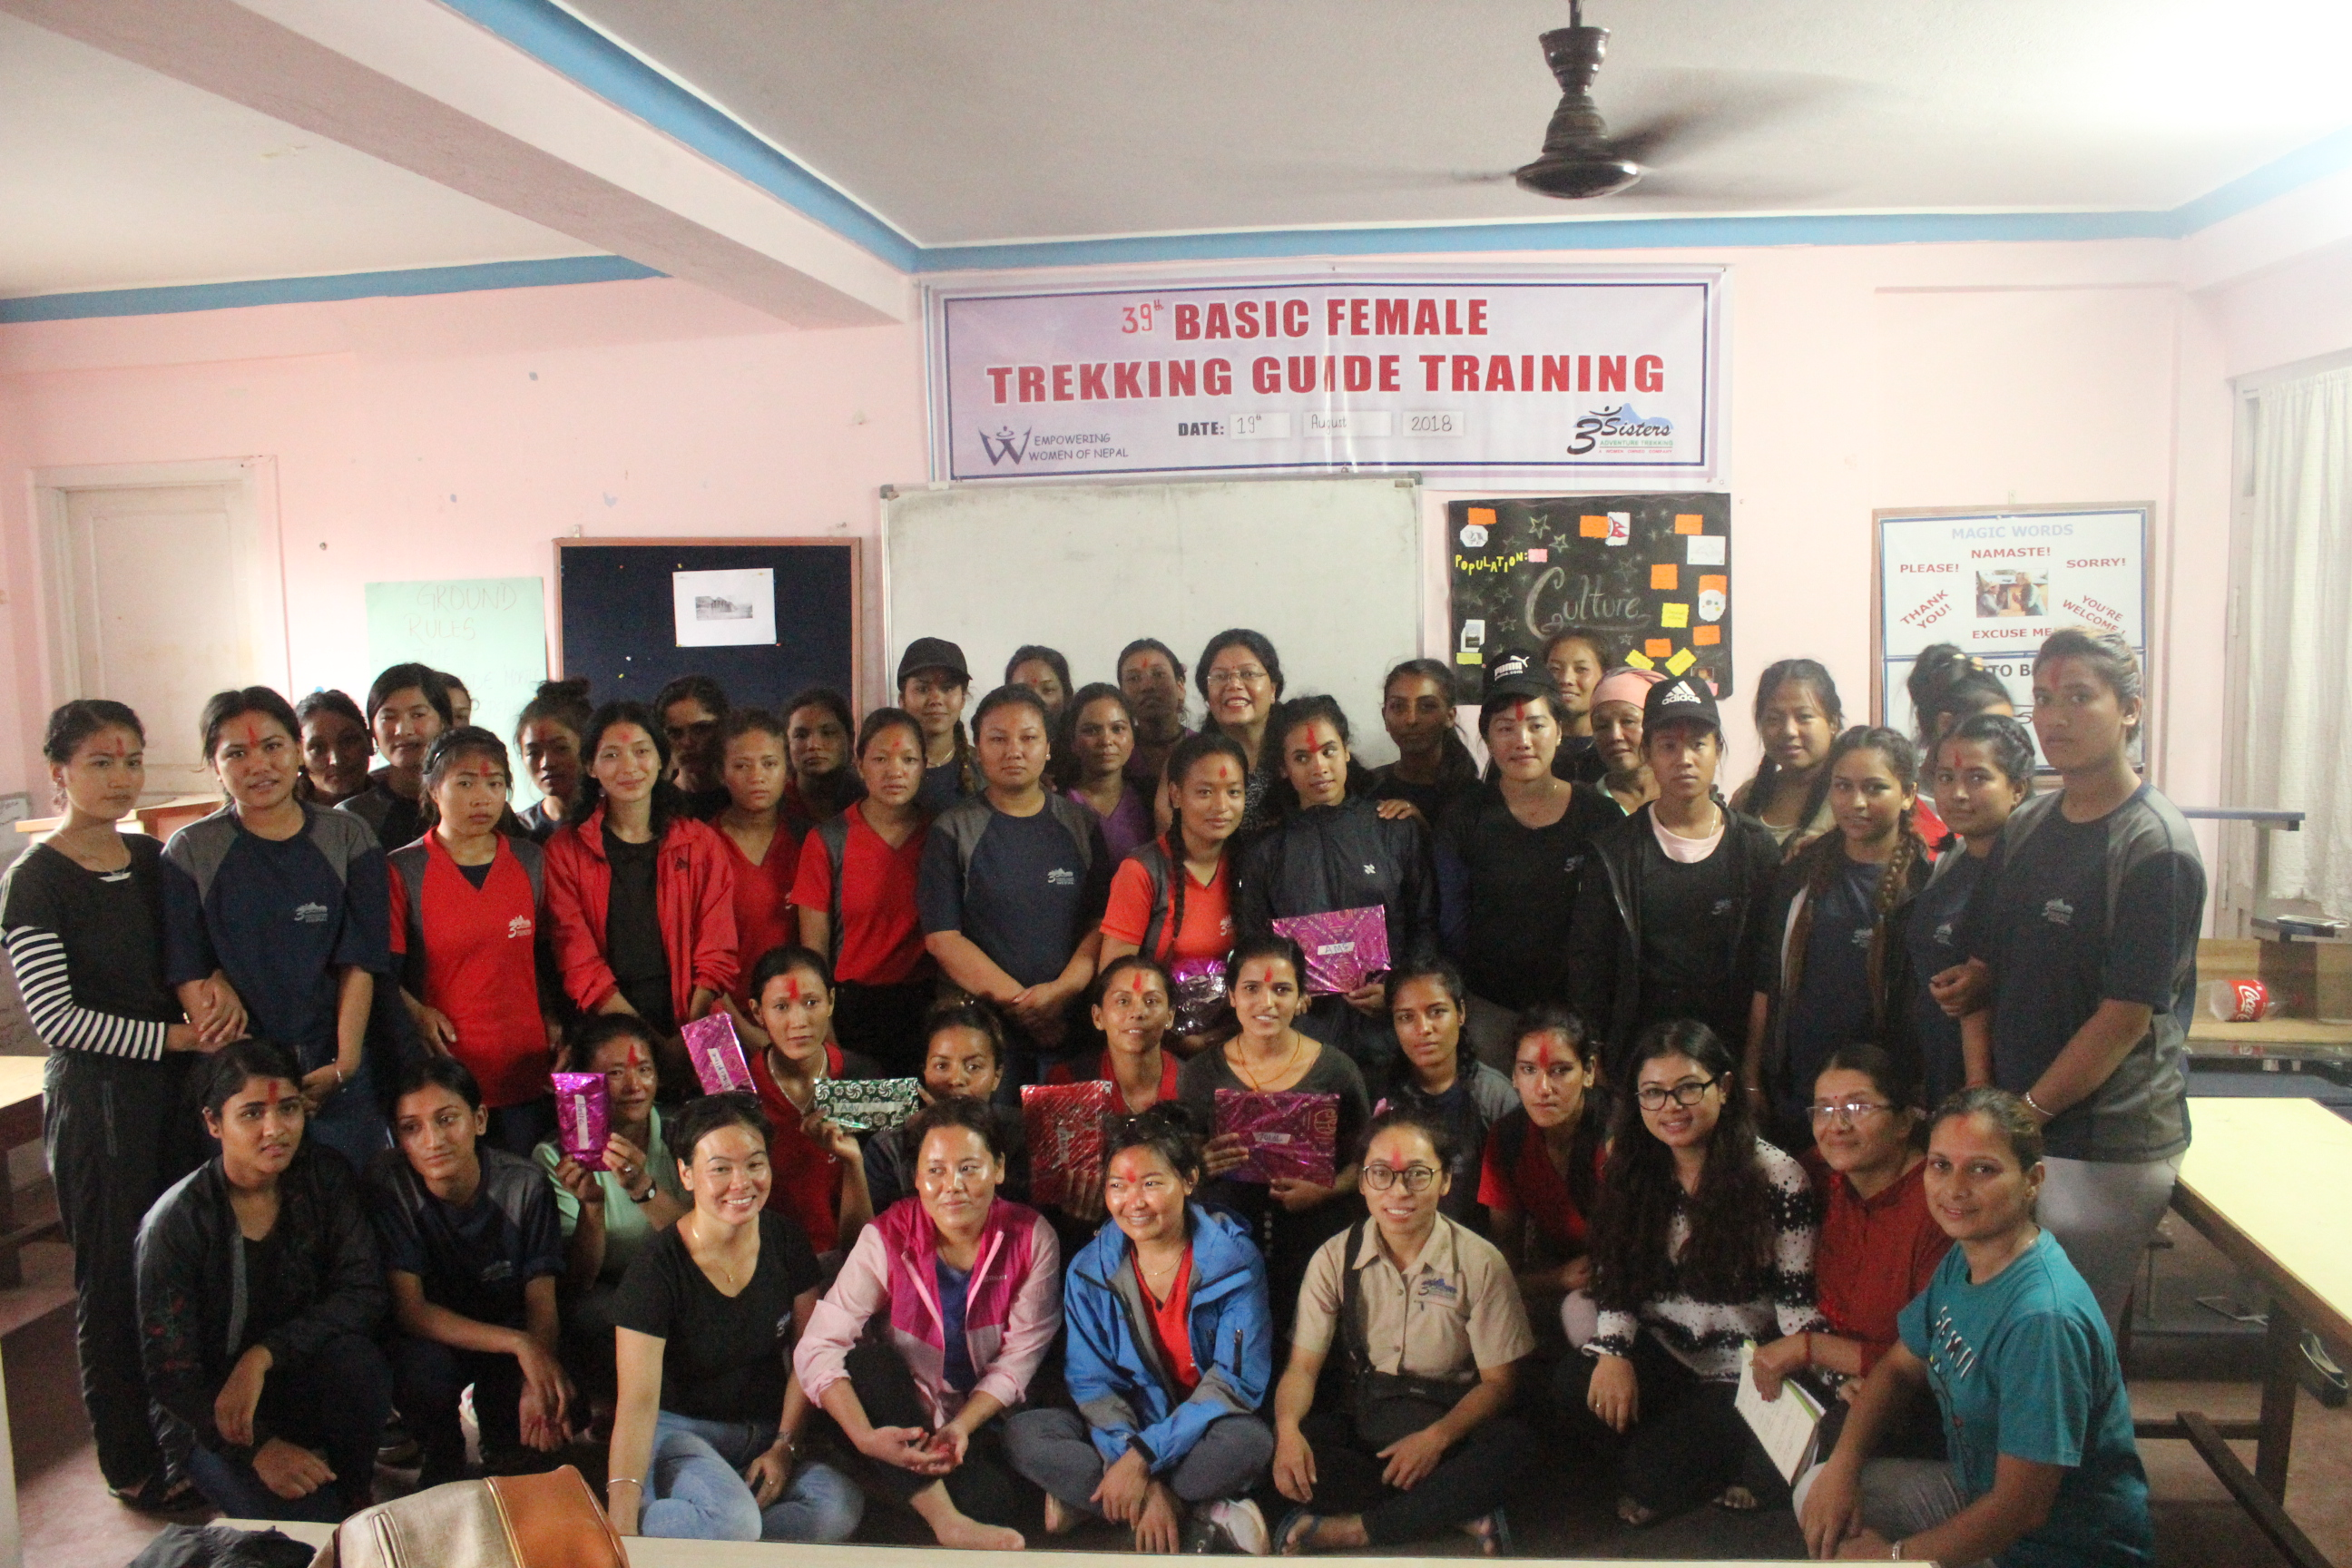 Closing Ceremony of Female Trekking Guide Training 2018